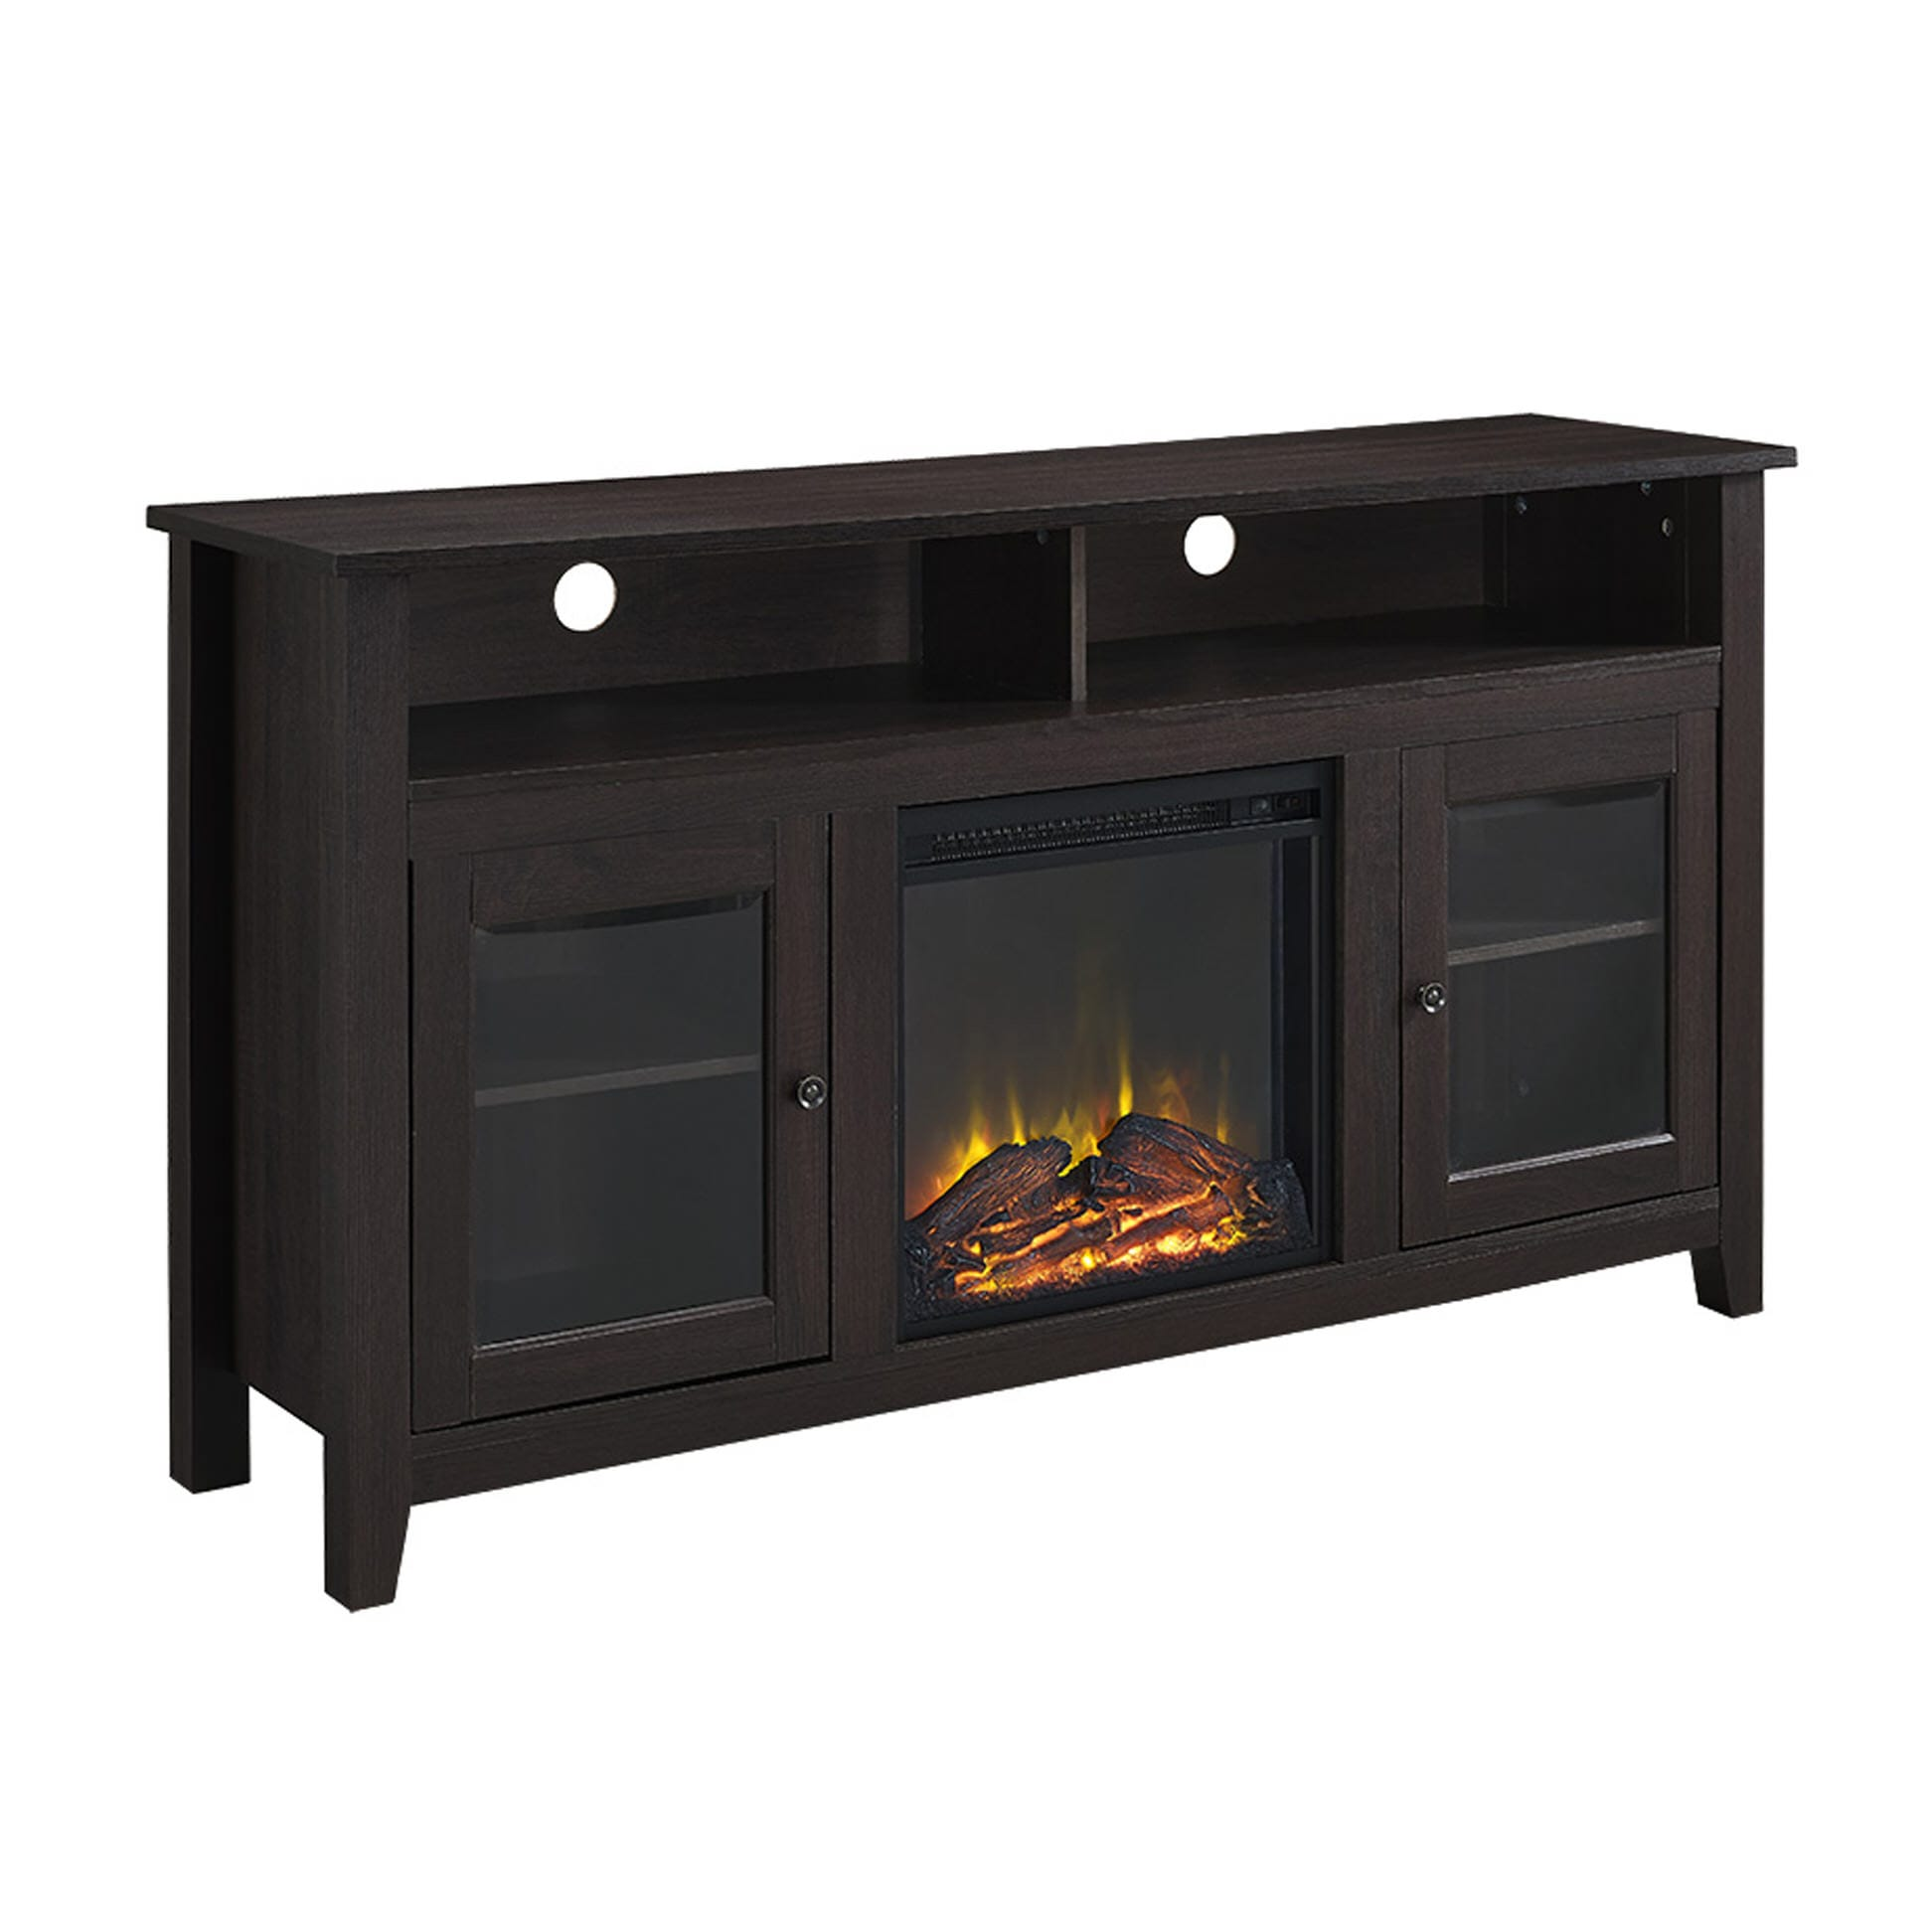 Wasatch 58 Inch Highboy Fireplace Tv Stand Espresso By Walker Edison